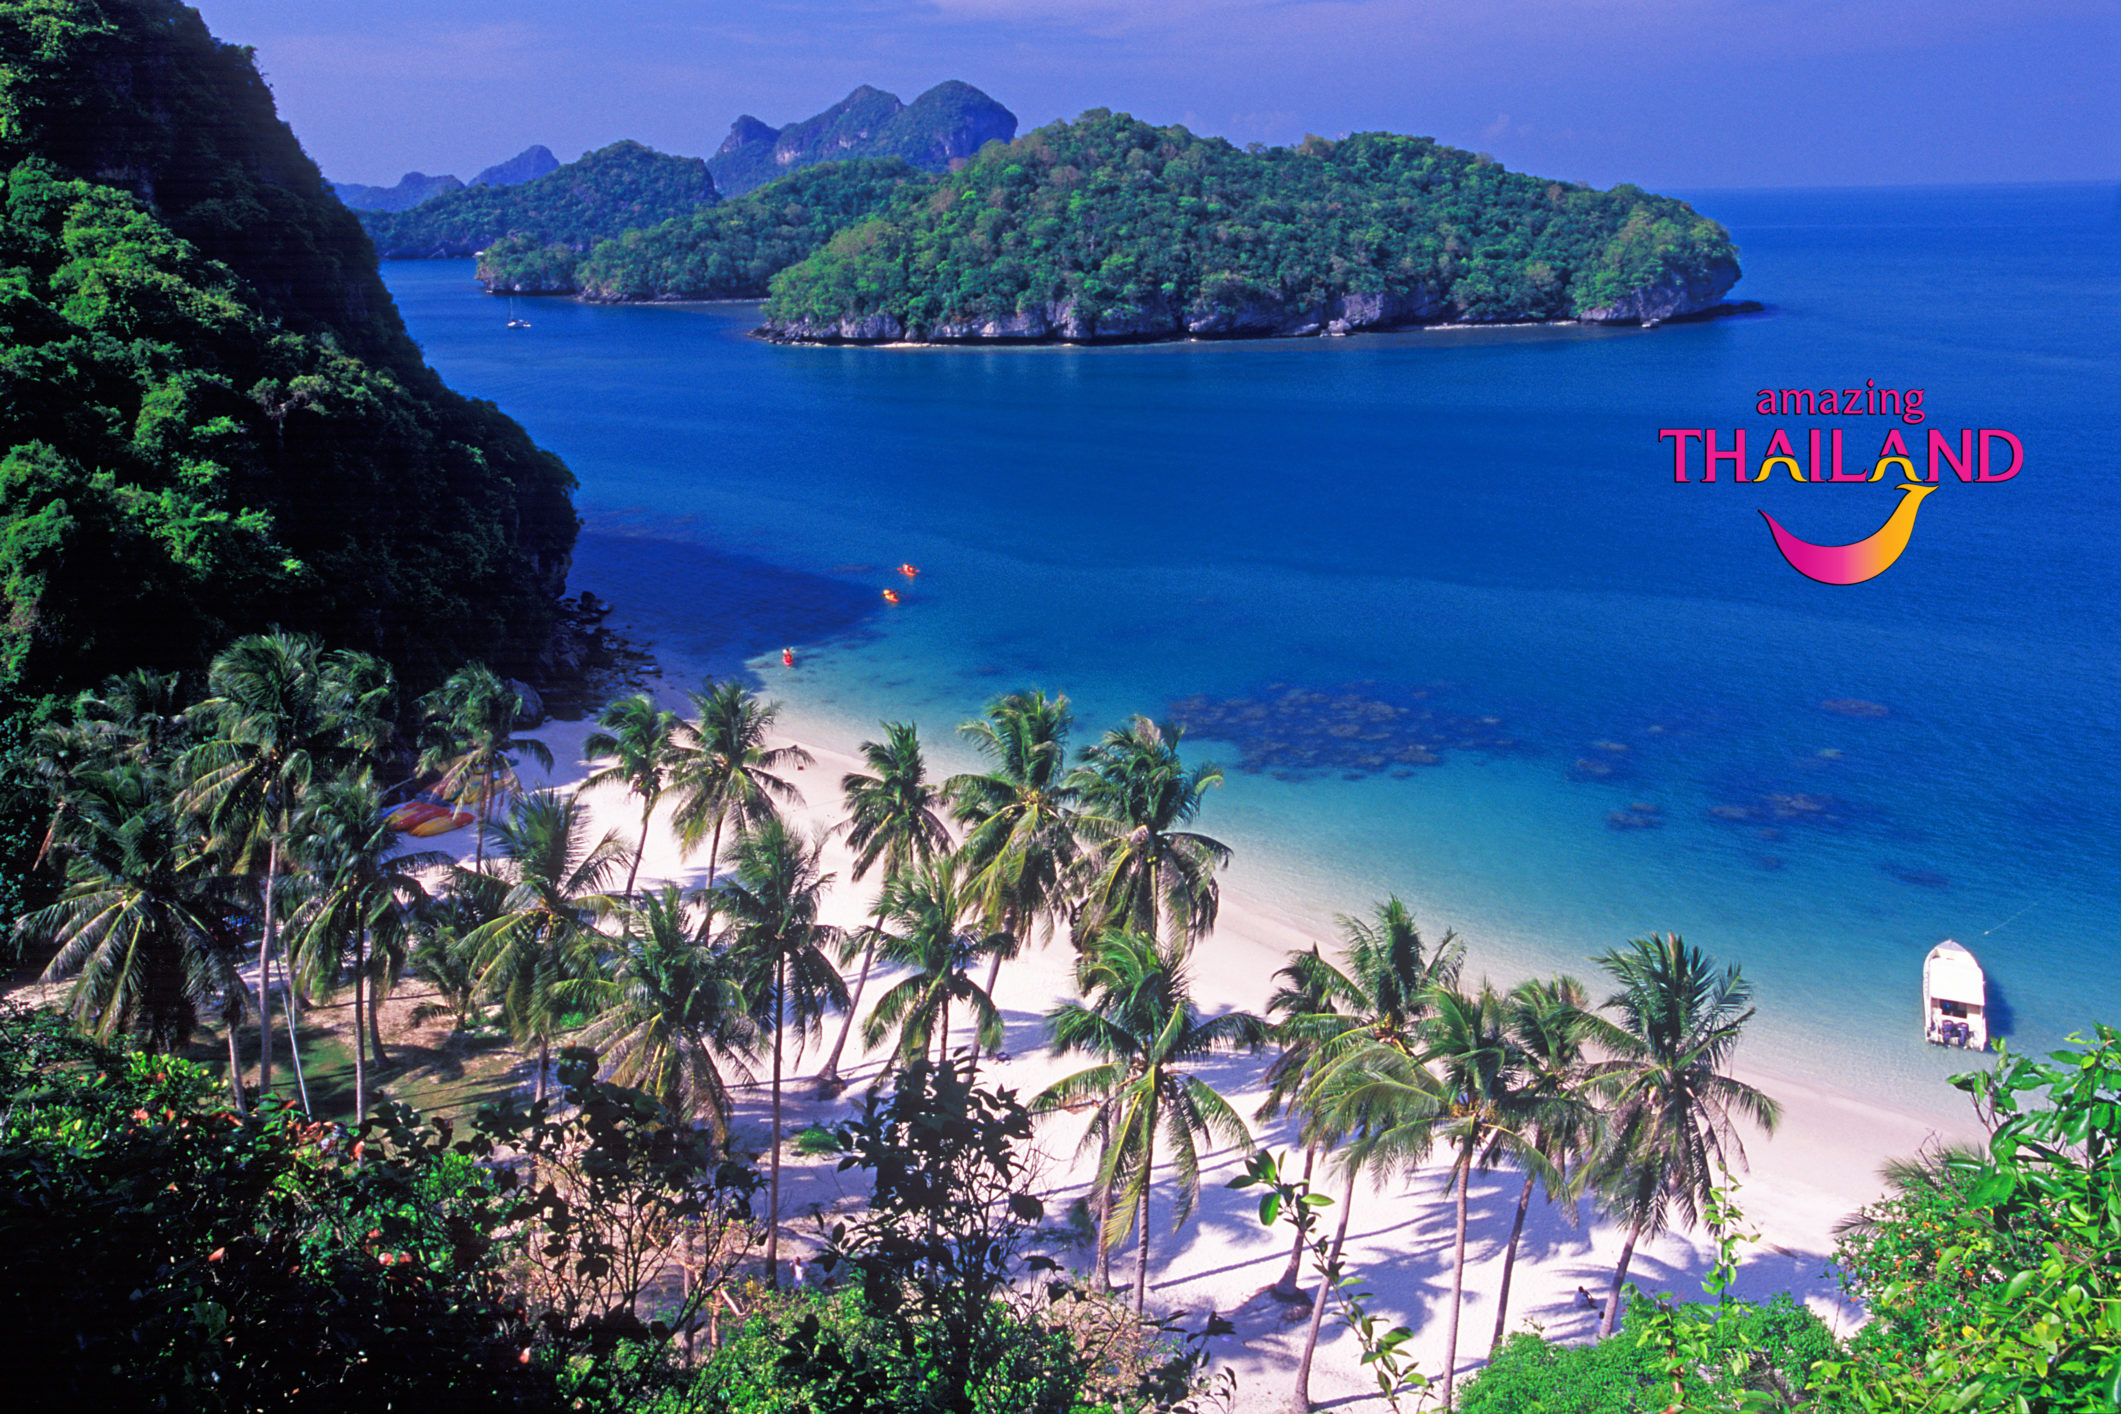 Koh Samui: Why the Thai Island Is the Perfect Destination for a Healthy Holiday